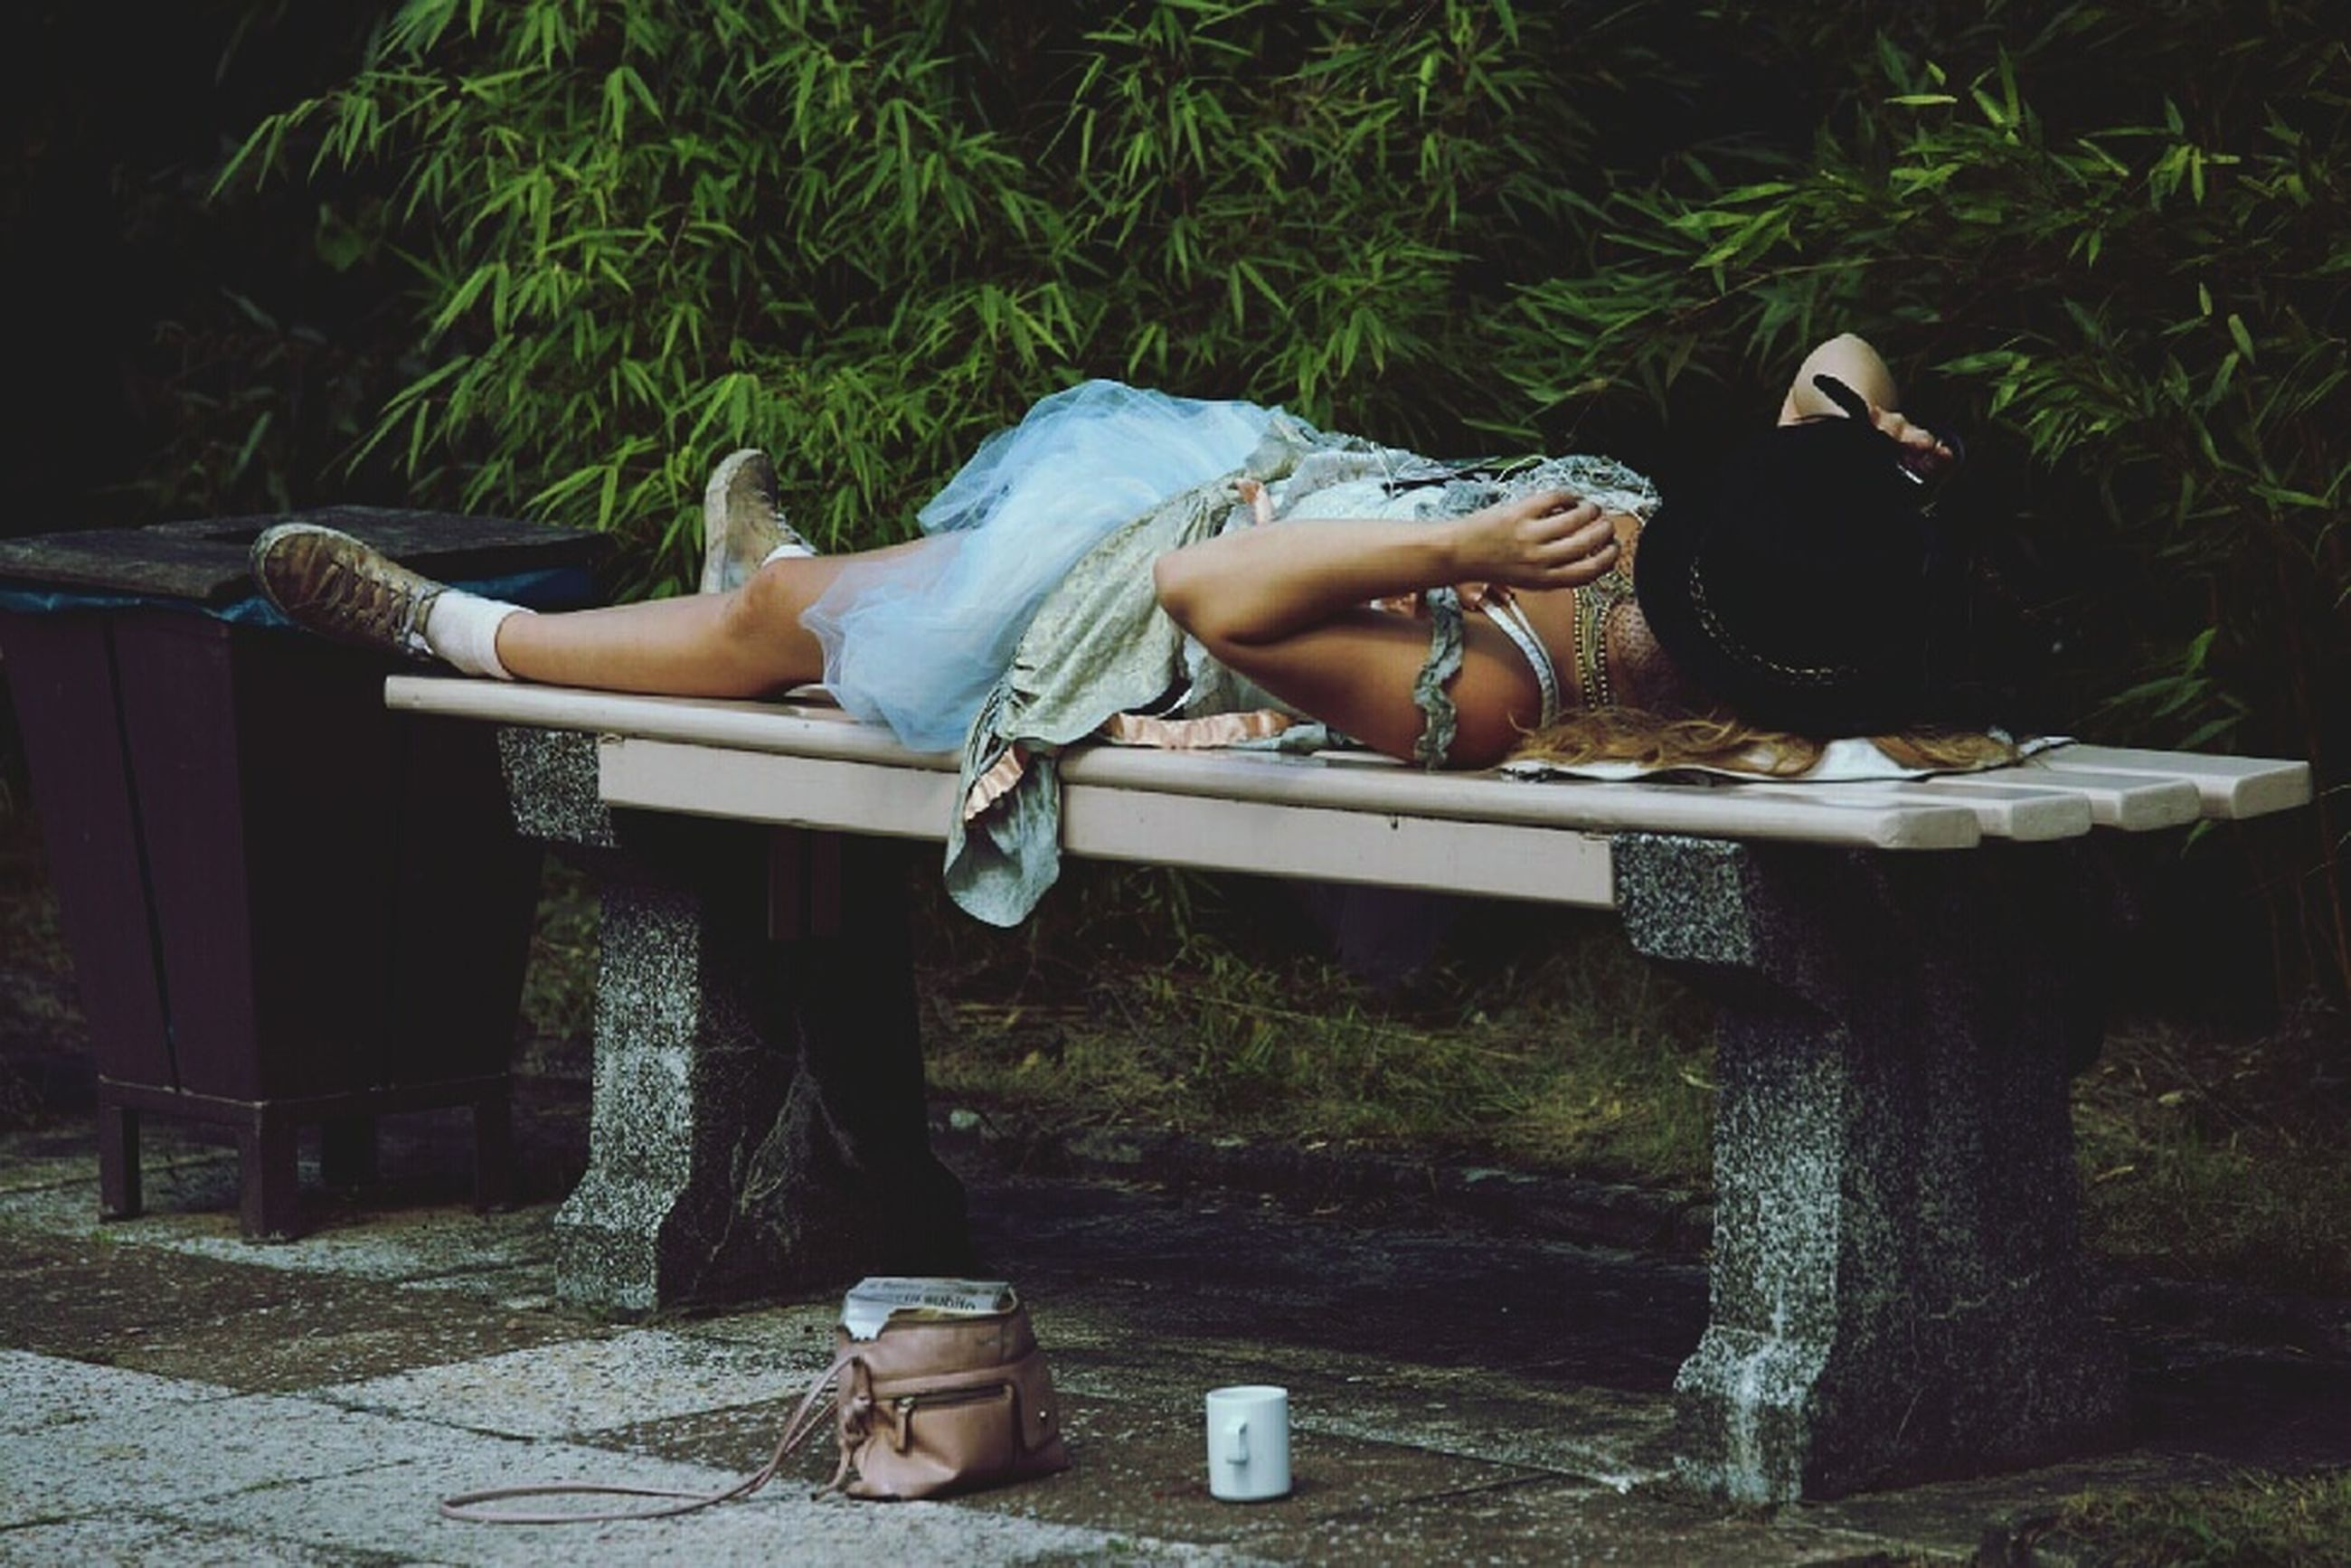 lying down, relaxation, one person, day, plant, lifestyles, real people, full length, men, nature, leisure activity, casual clothing, tree, low section, sleeping, lying on back, outdoors, young adult, bench